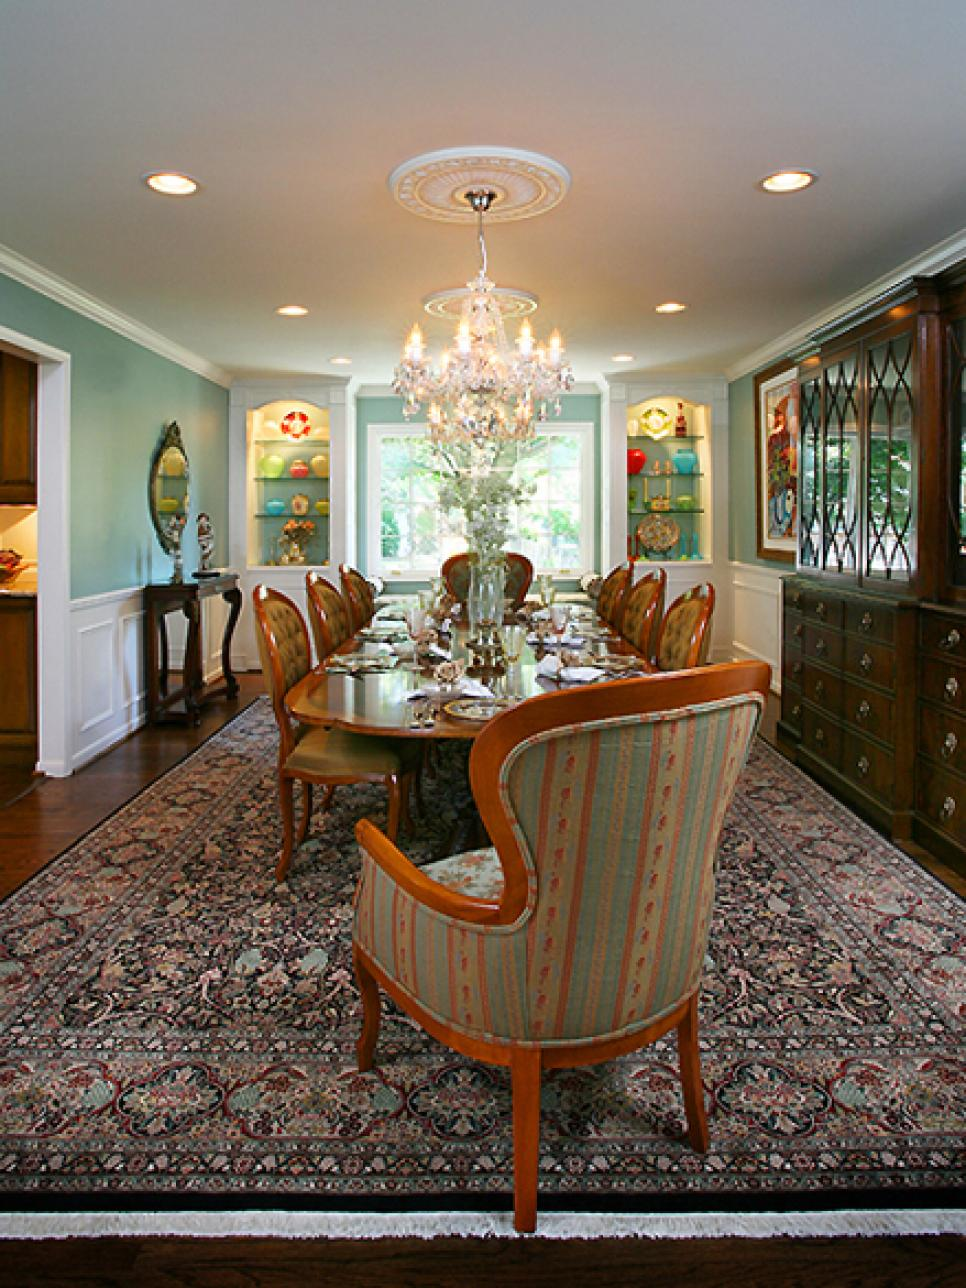 8 elegant victorian style dining room designs hgtv for Dining room 101 heswall